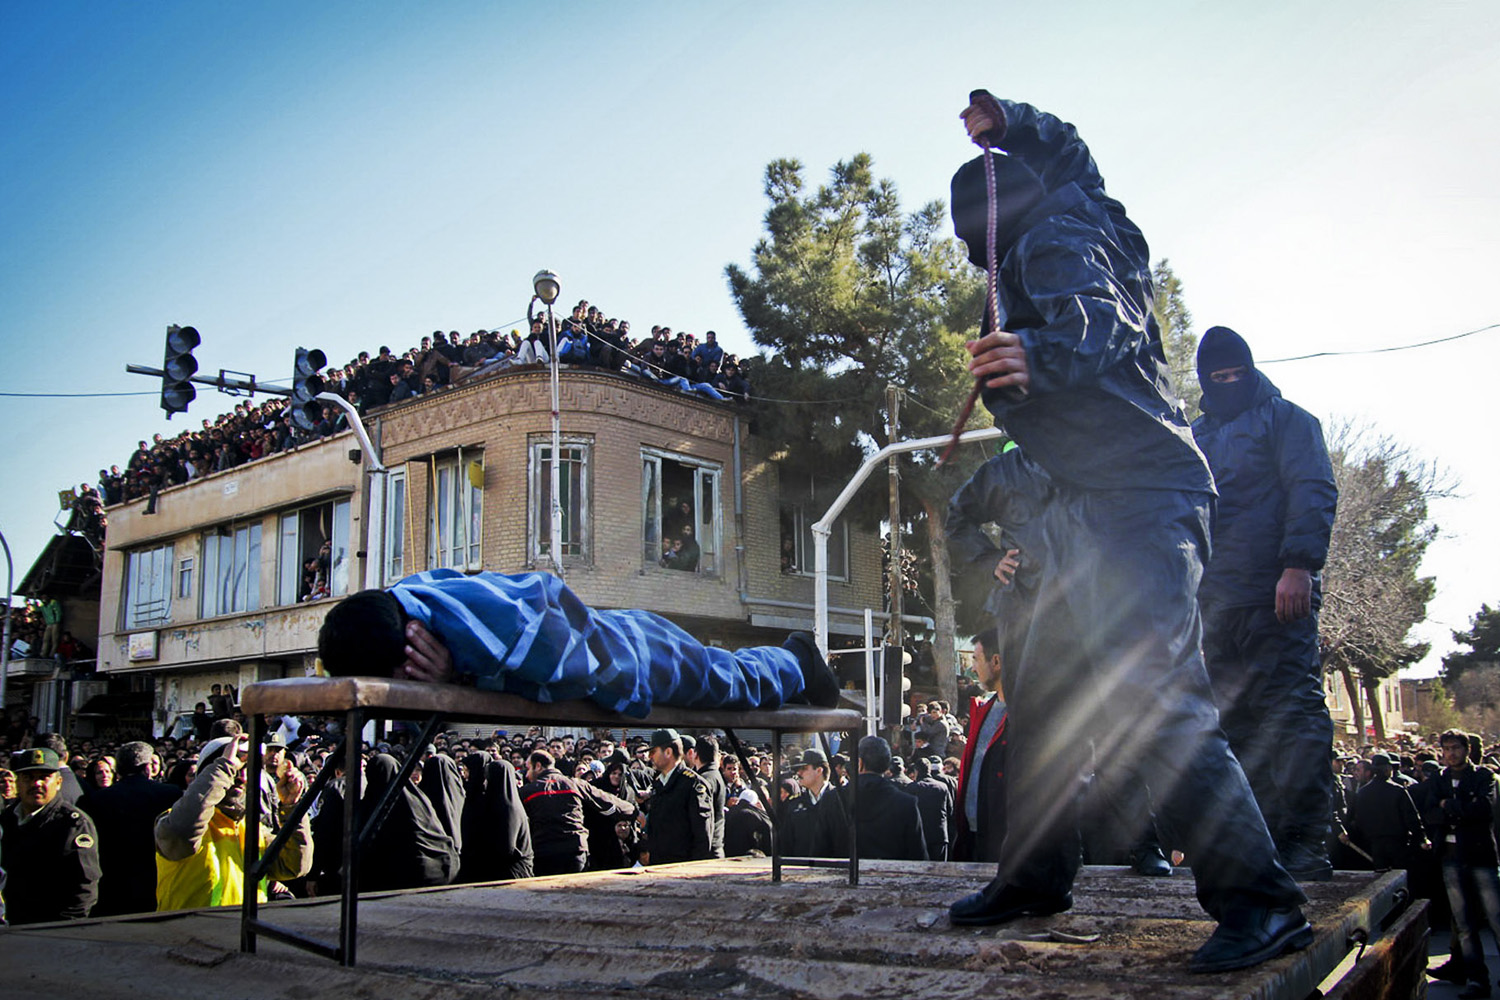 Jan. 16, 2013. An Iranian officer lashes a man, convicted of rape, at the northeastern city of Sabzevar, Iran.